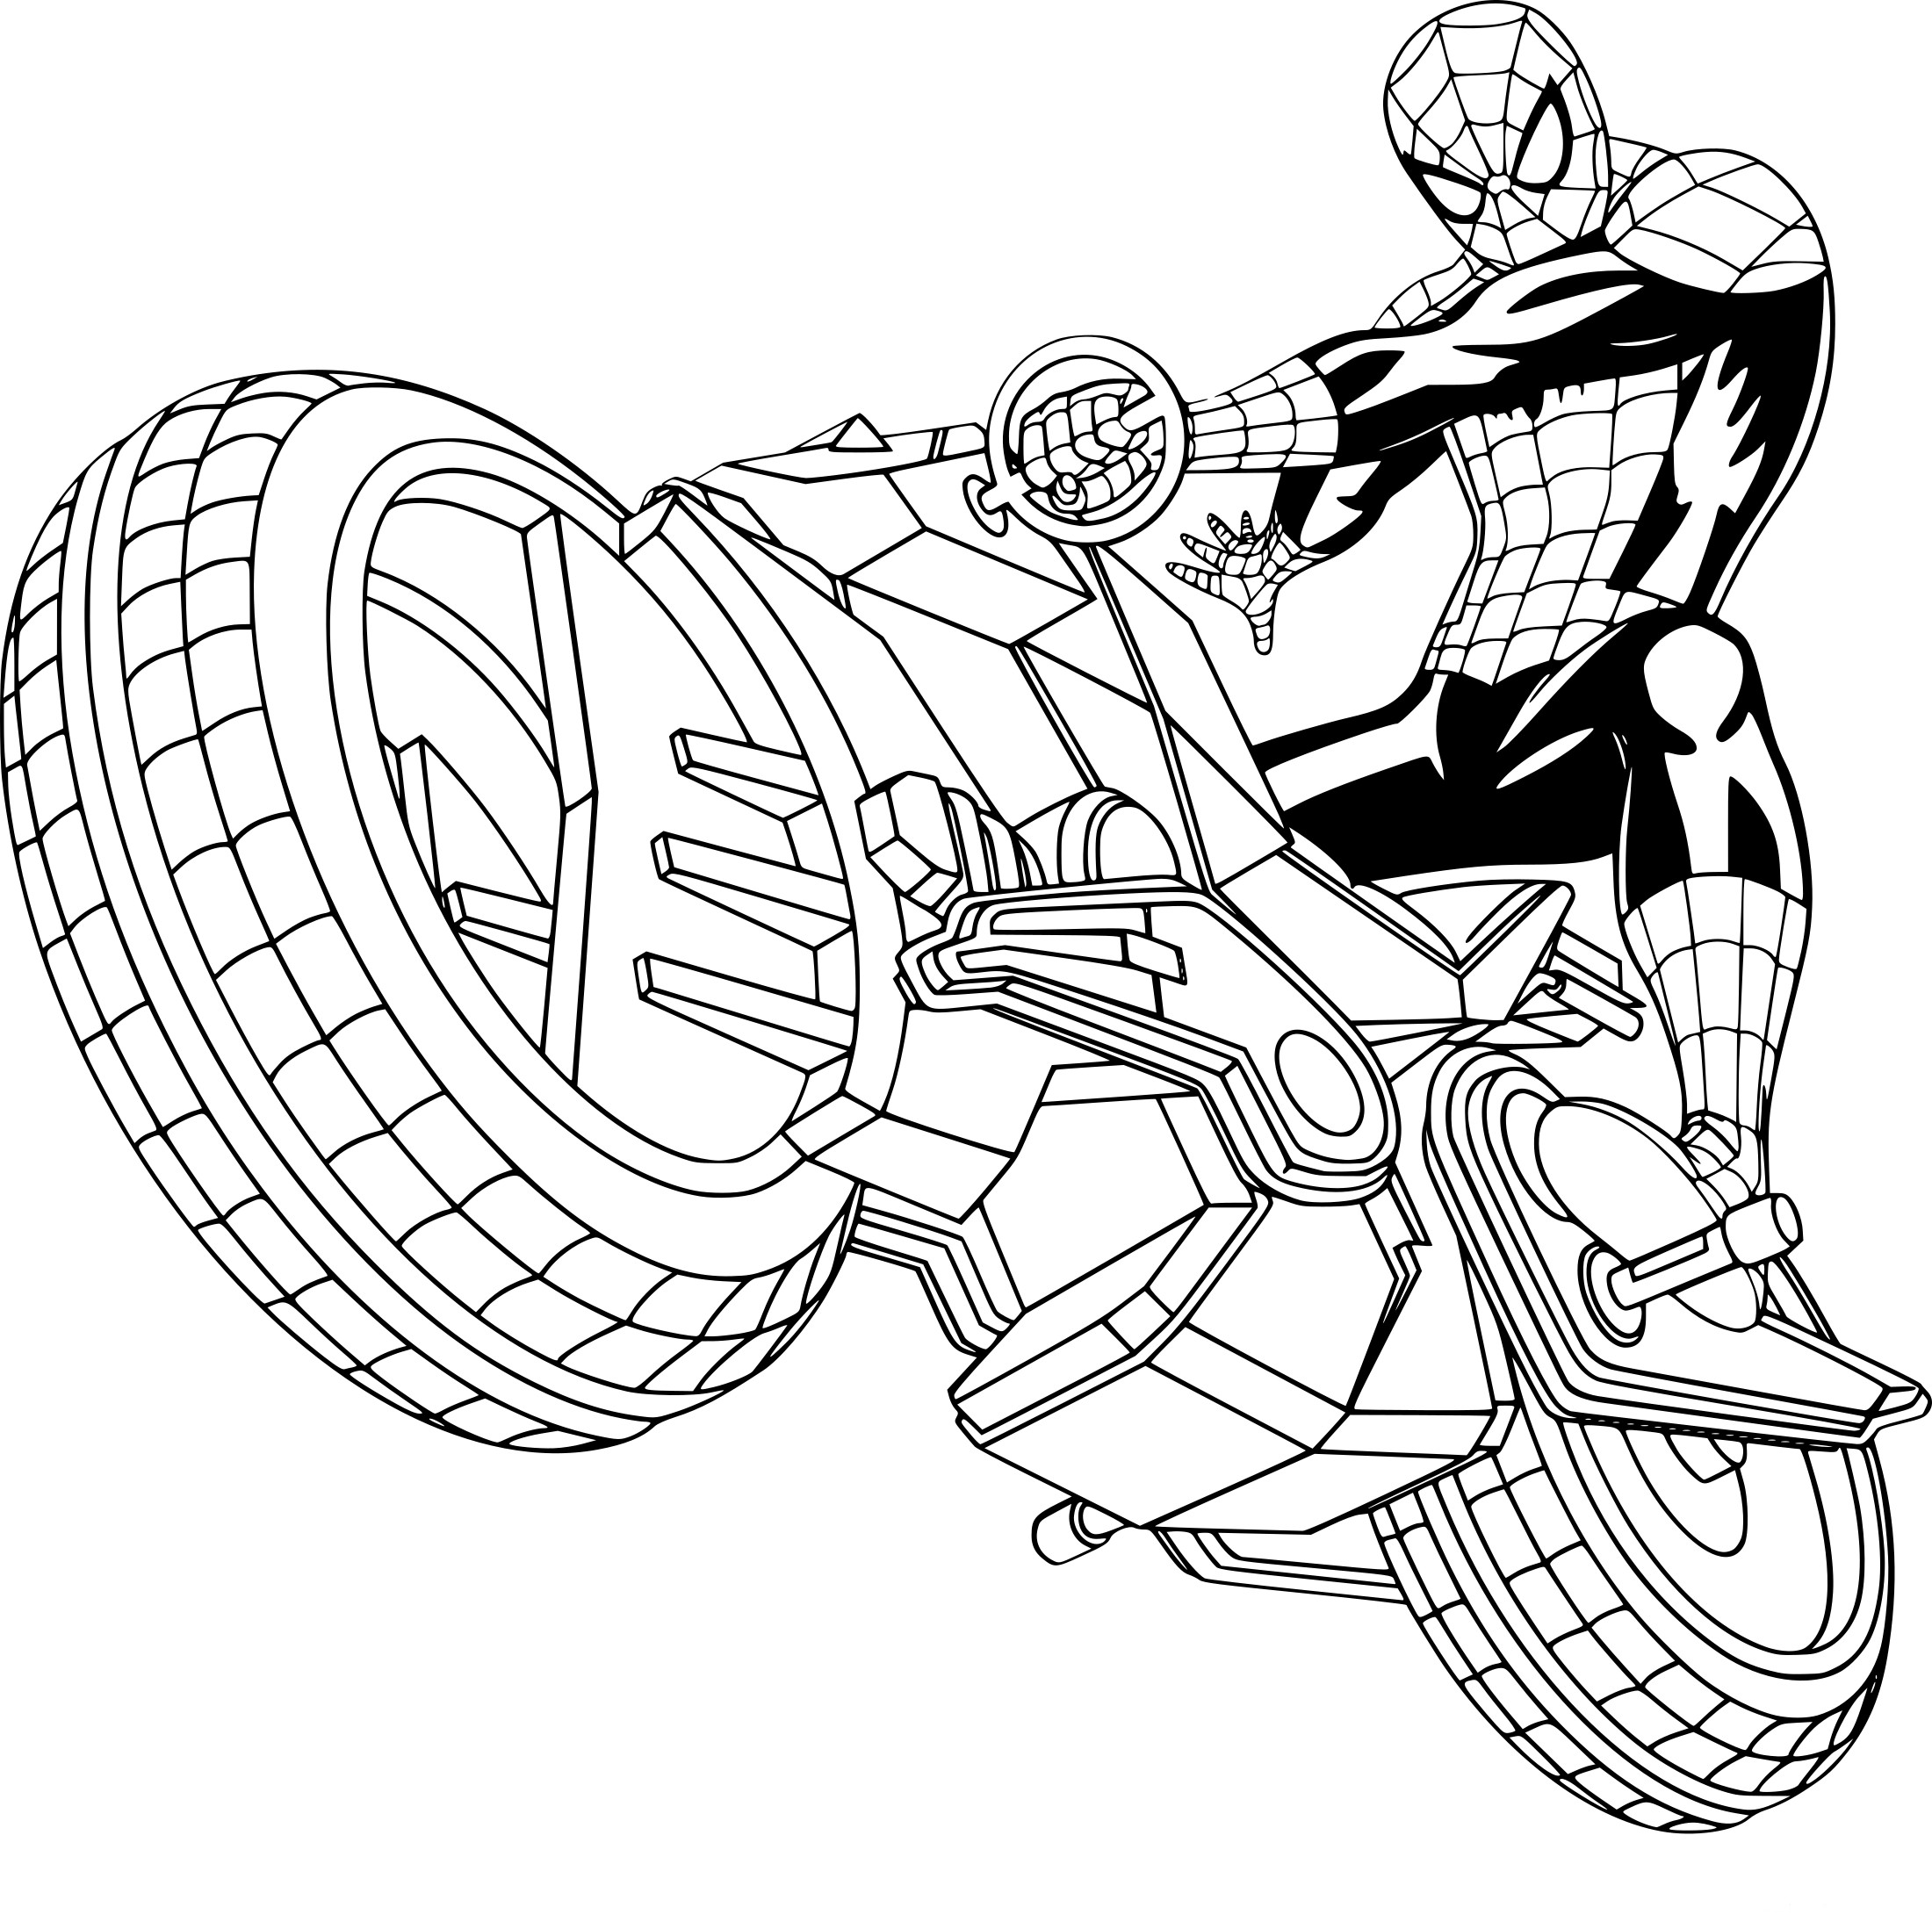 Coloriage Moto Spiderman Hotelhetgetij